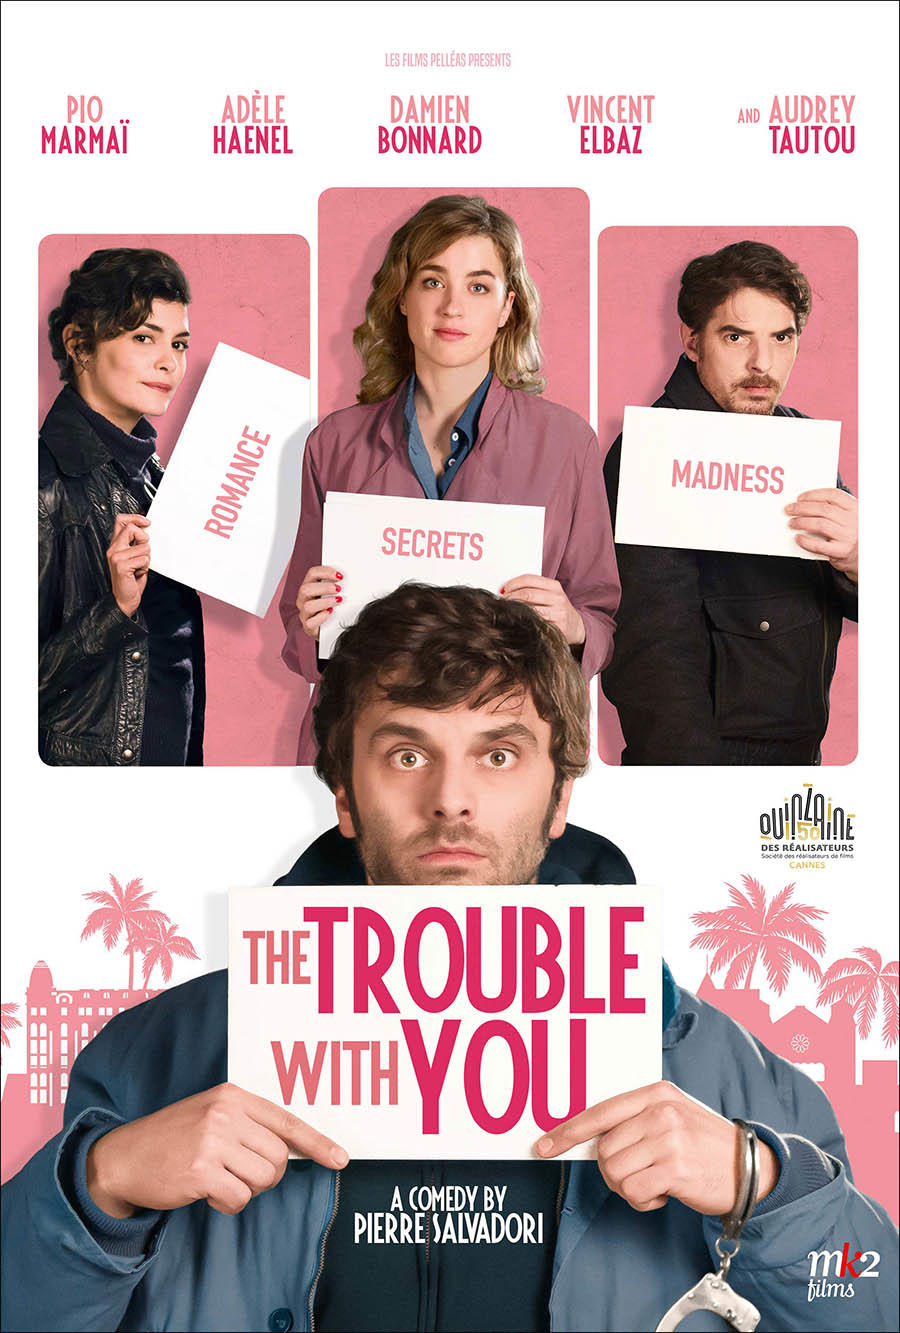 The Trouble With You (En liberté!) poster art